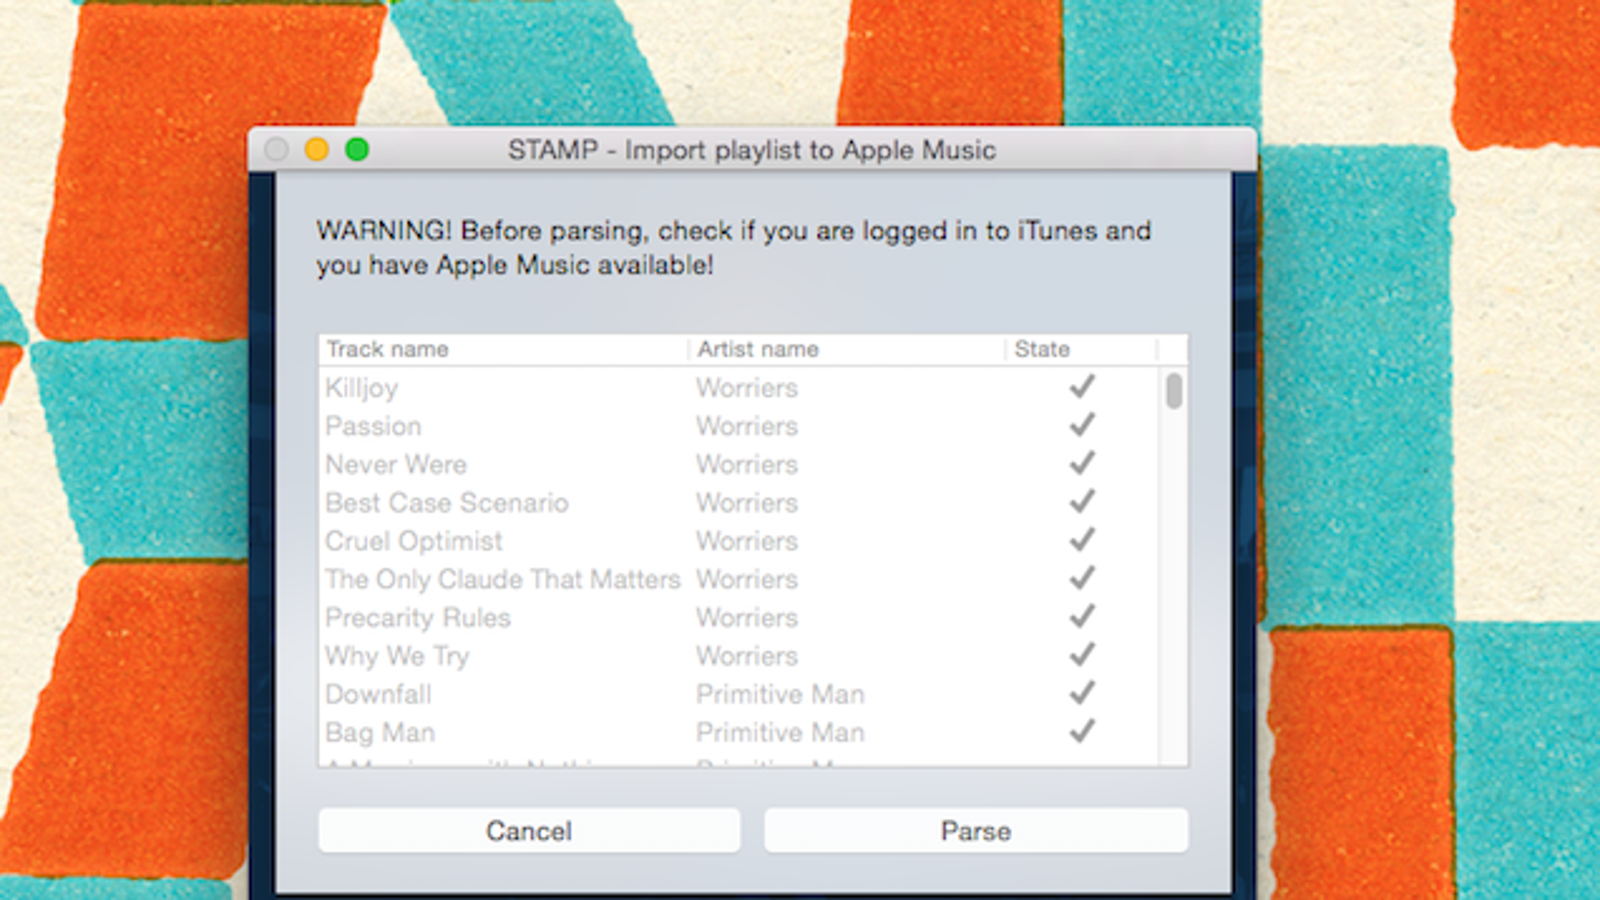 S t A M P Imports Spotify Songs Into Apple Music